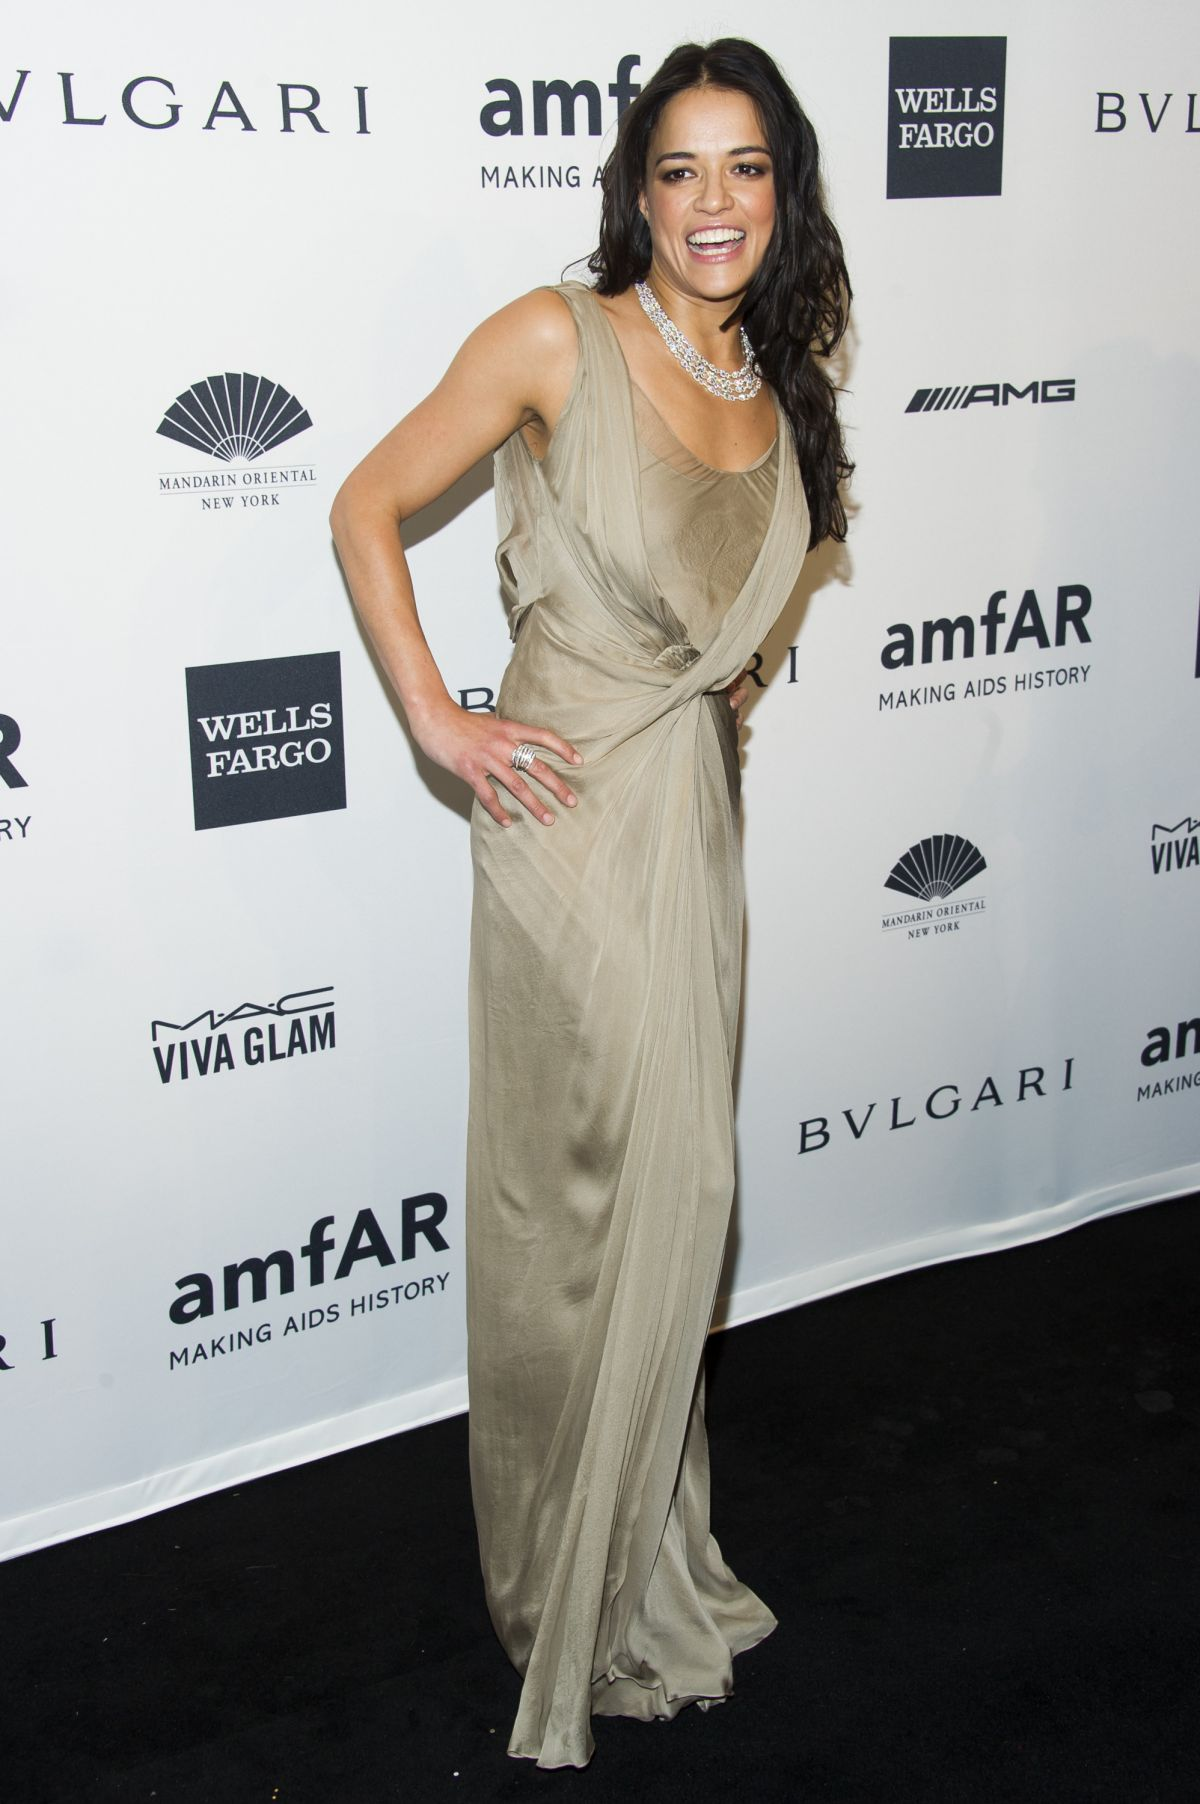 MICHELLE RODRIGUEZ at 2014 AMFAR Gala in New York